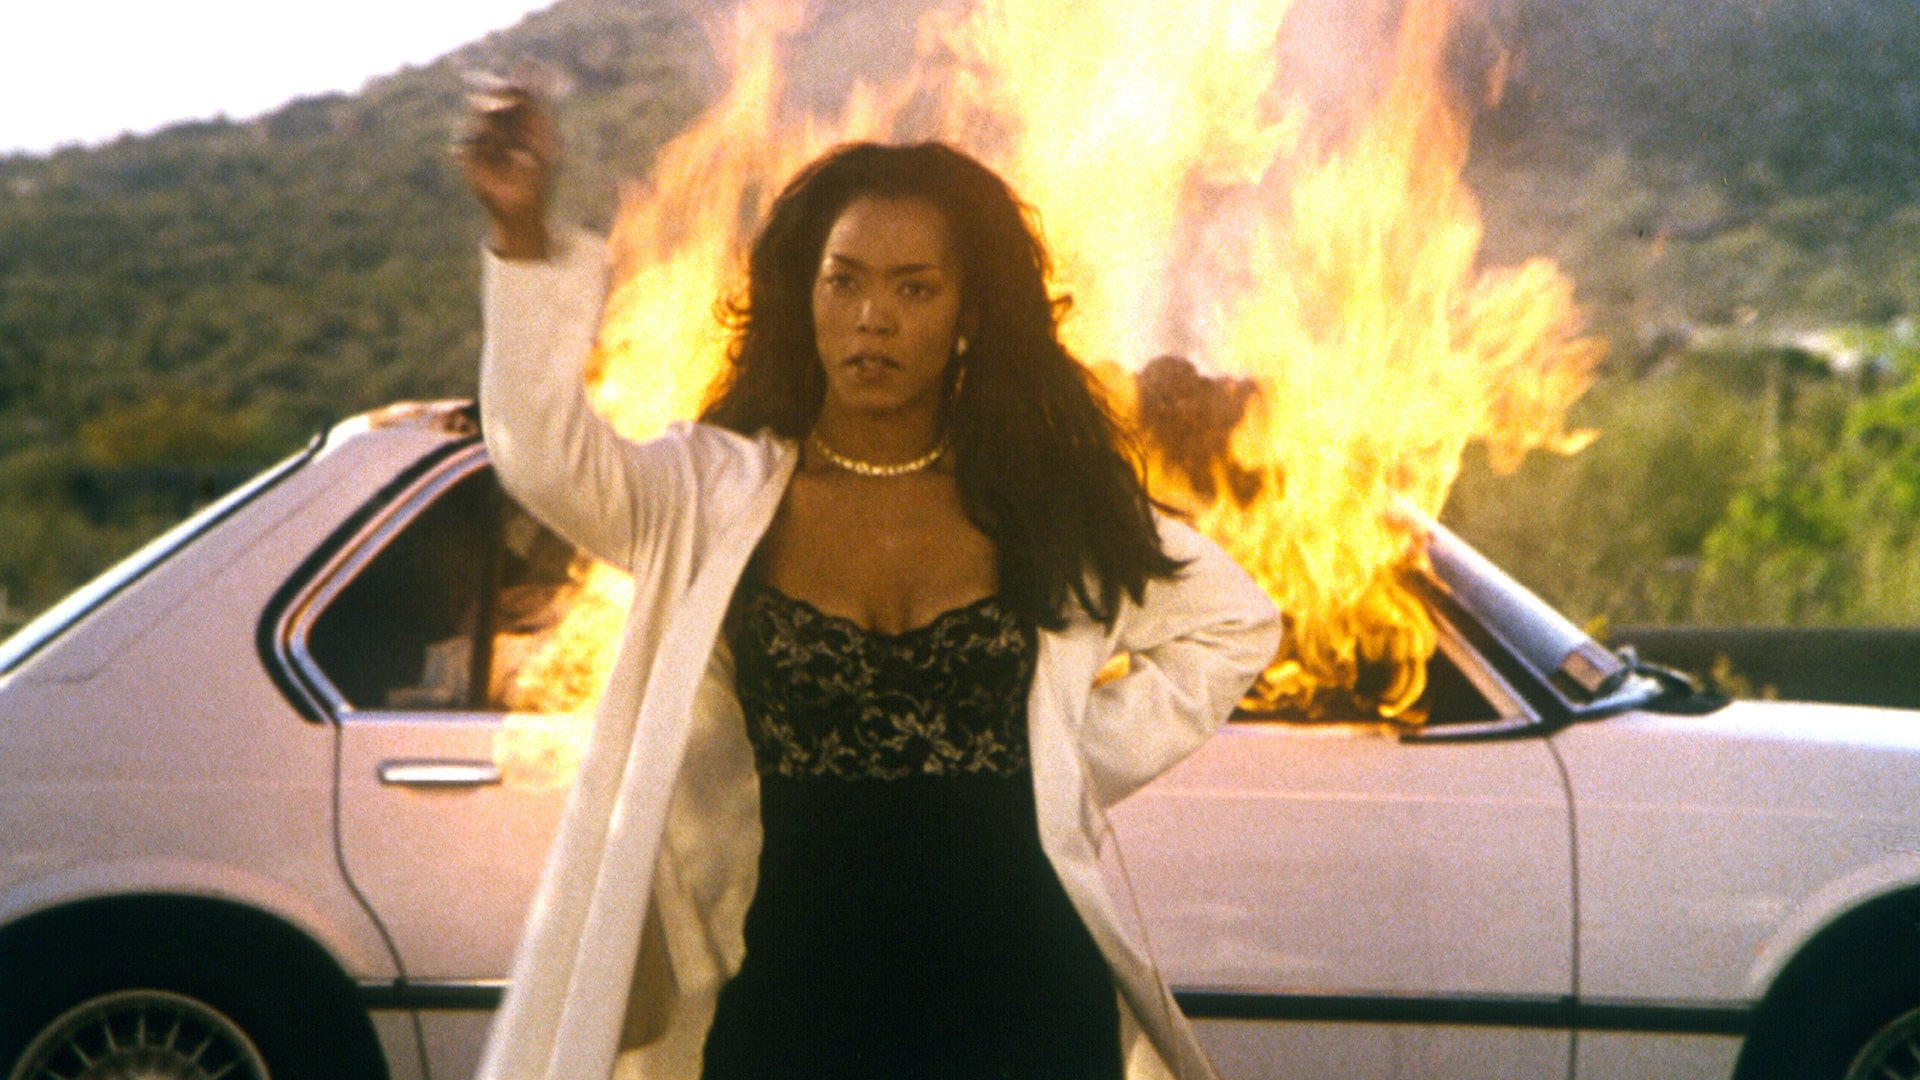 Black 90s: A Turning Point in American Cinema